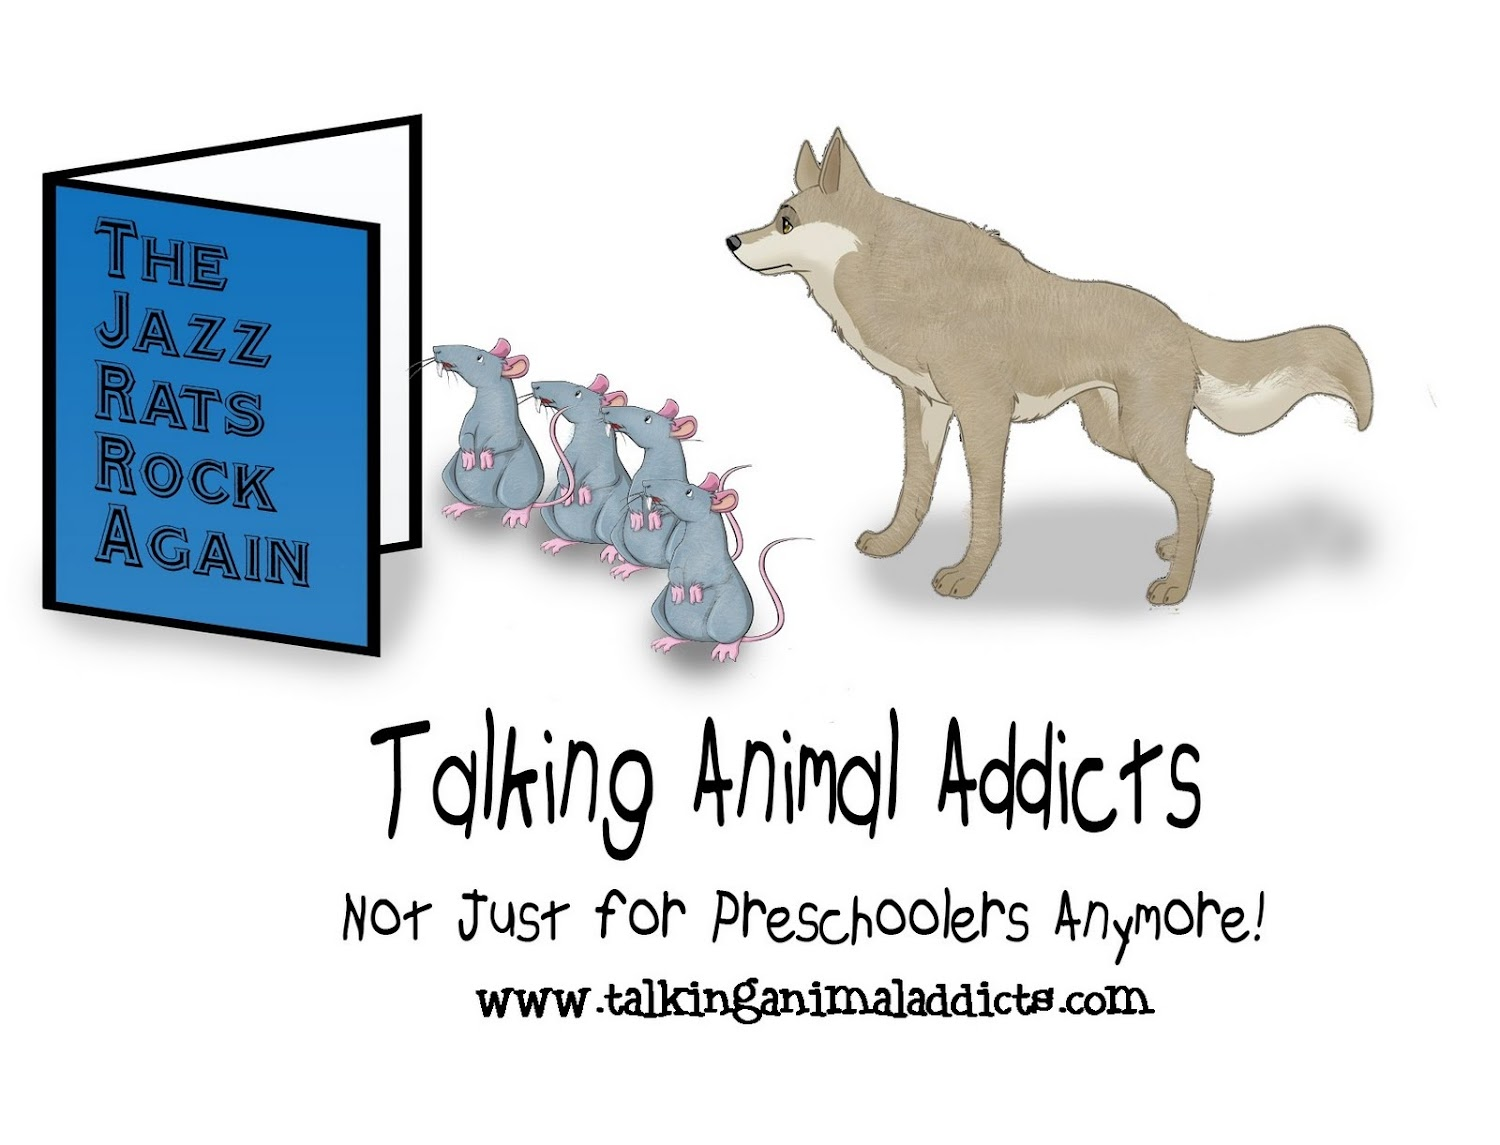 Talking Animal Addicts